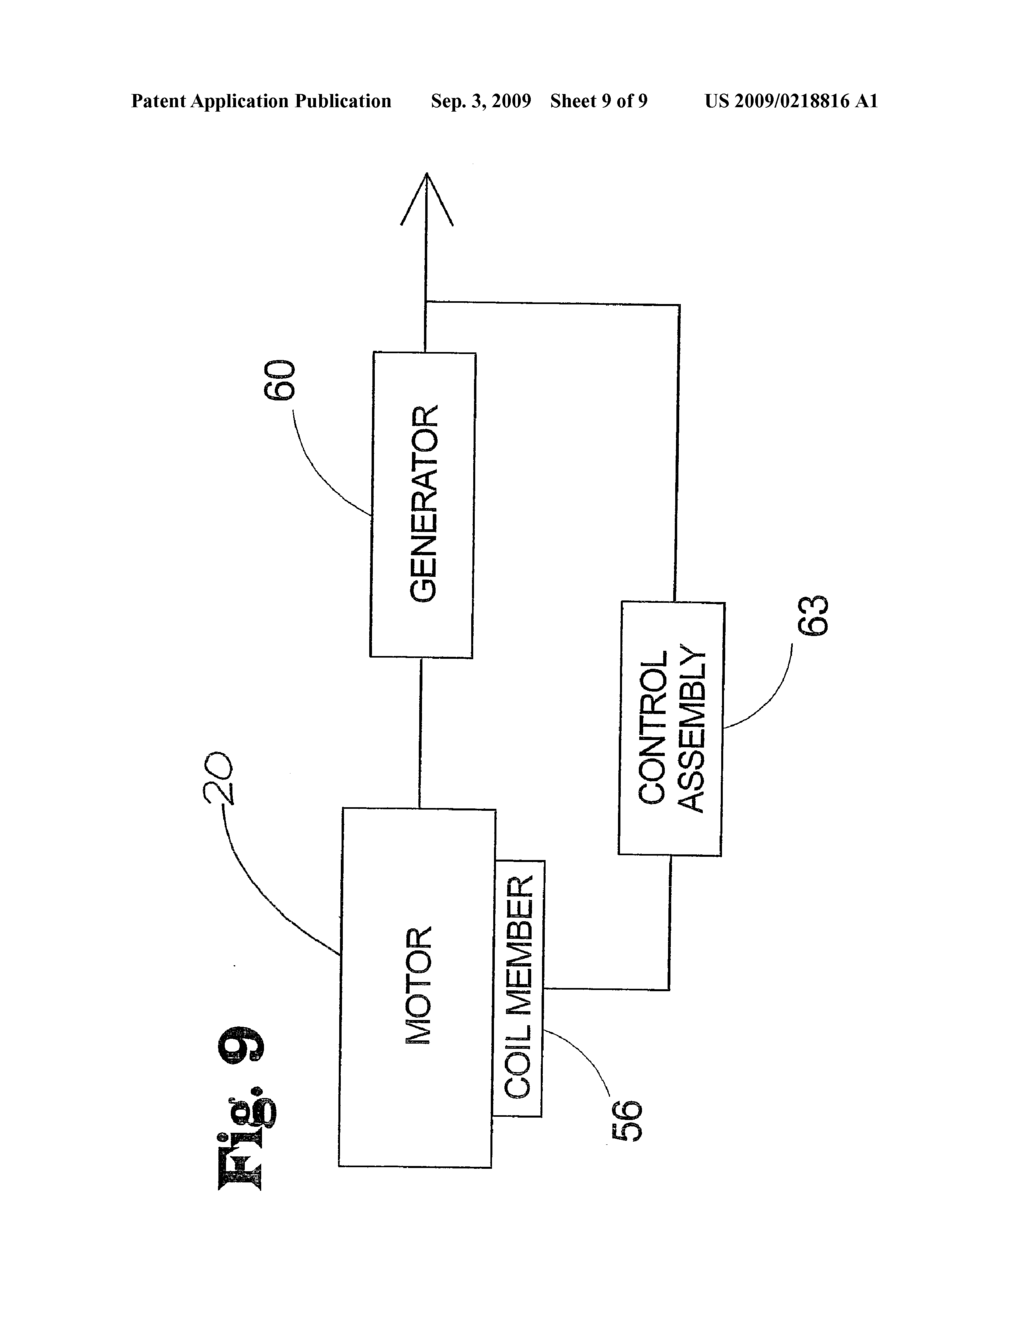 Motor generator system with a current control feedback loop motor generator system with a current control feedback loop diagram schematic and image 10 pooptronica